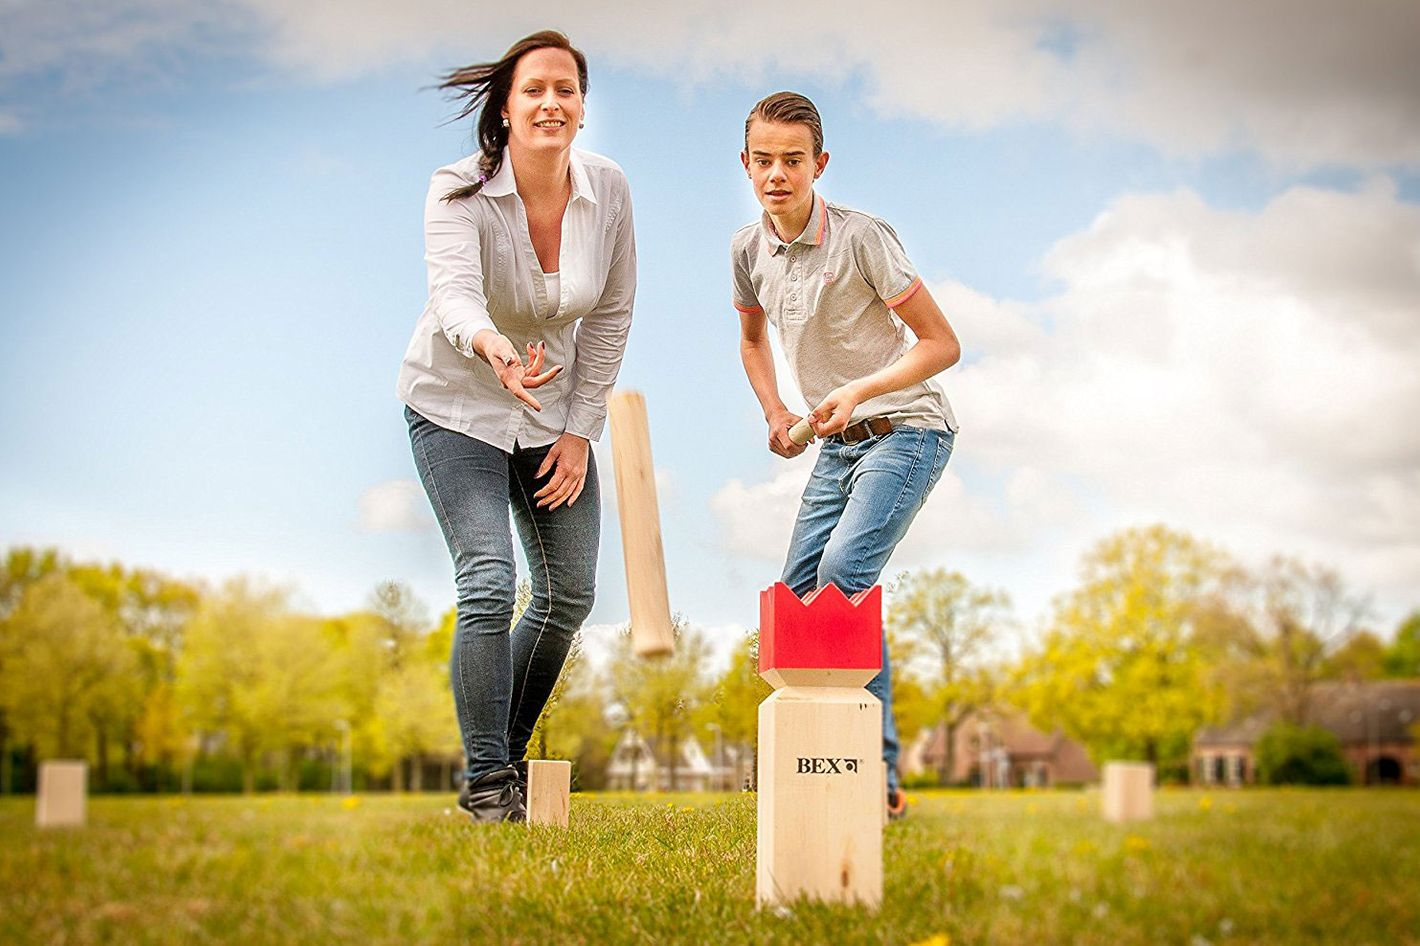 Bex Sports Kubb Game Original Red King